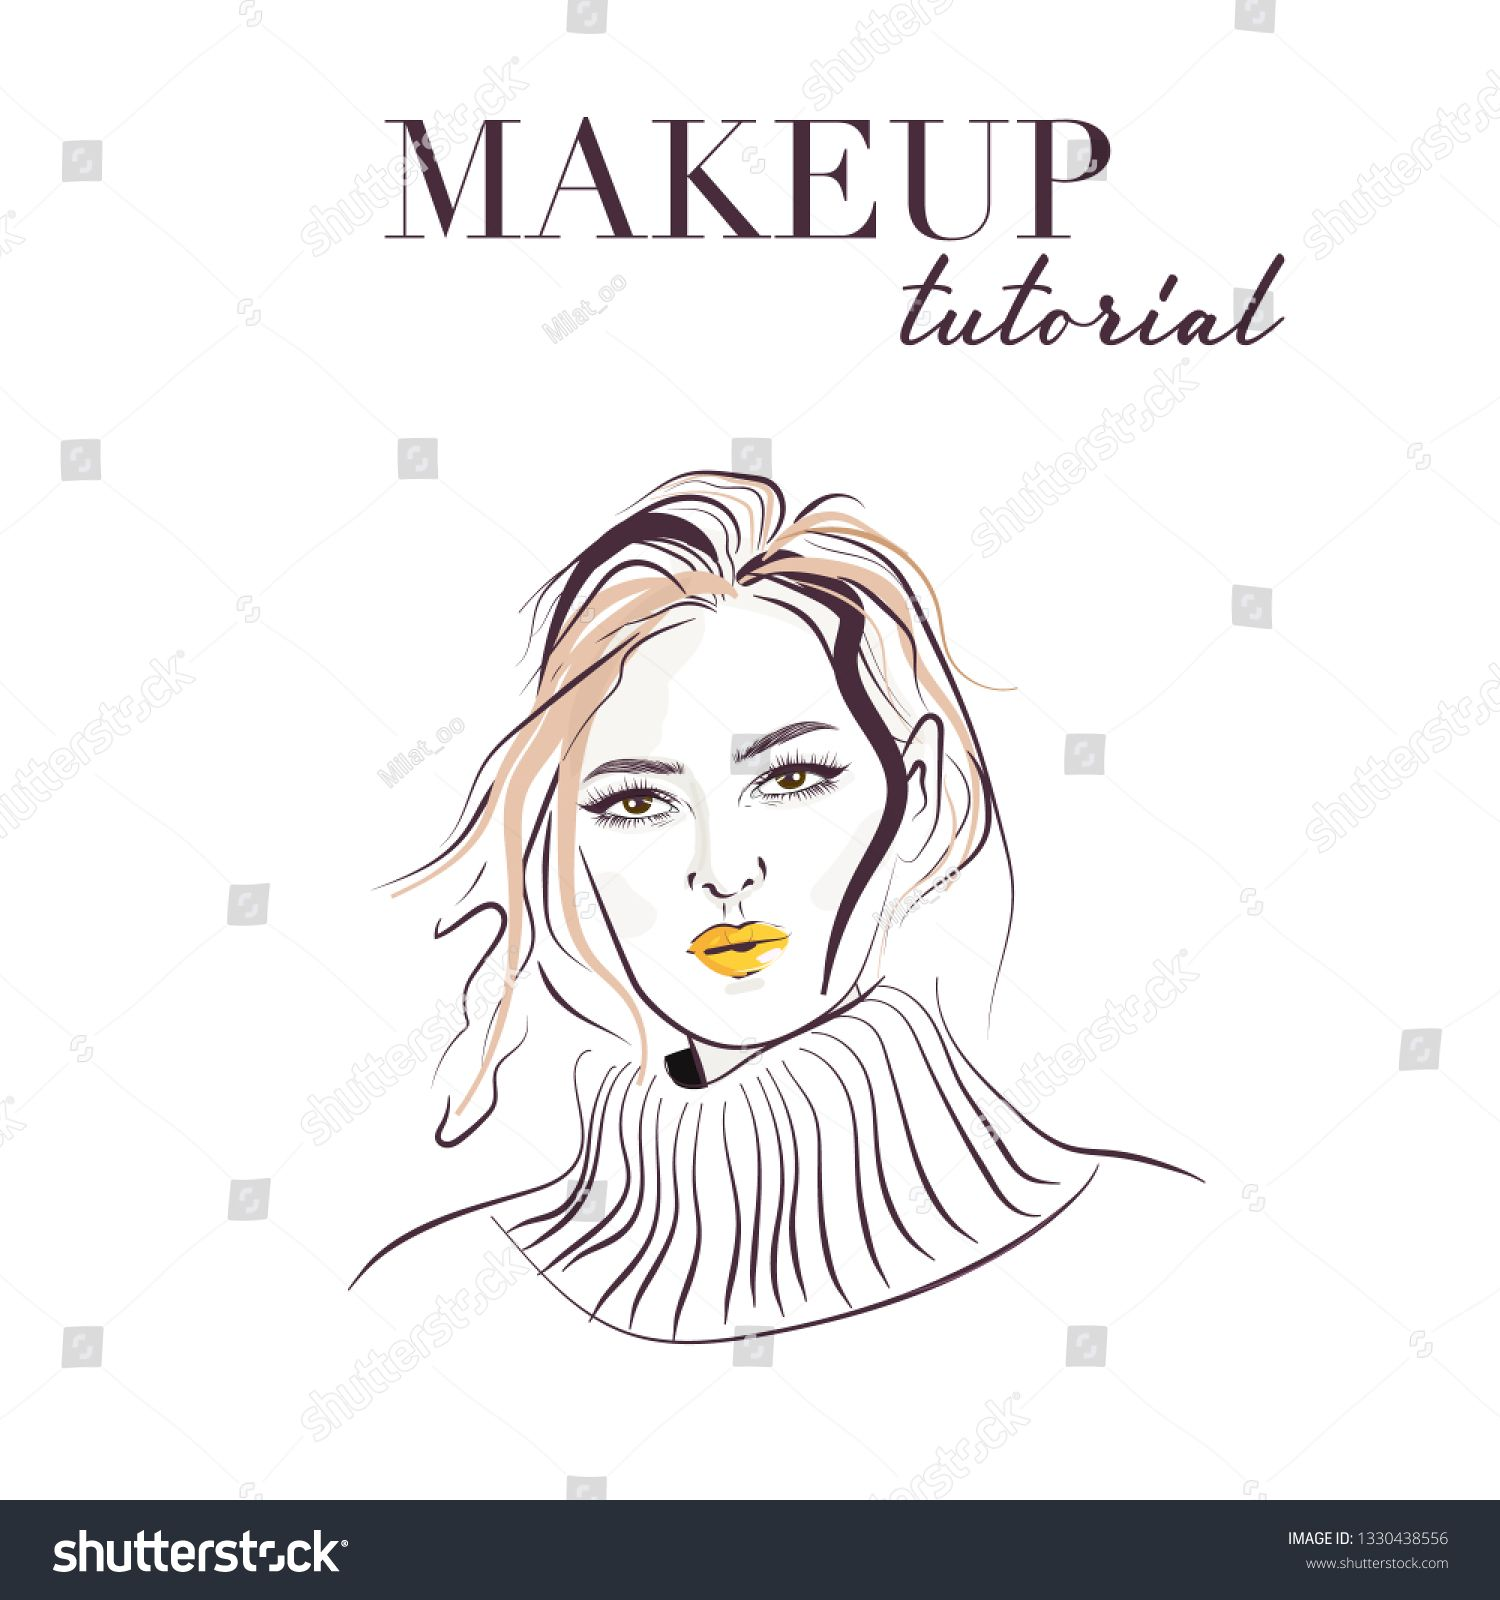 Woman face hand drawn. Makeup model face vector sketch. Young woman with bright lips illustration. Portrait with beautiful young attractive girl model. Fashion, style, beauty. Graphic, sketch drawing #Sponsored , #Sponsored, #sketch#vector#Young#bright